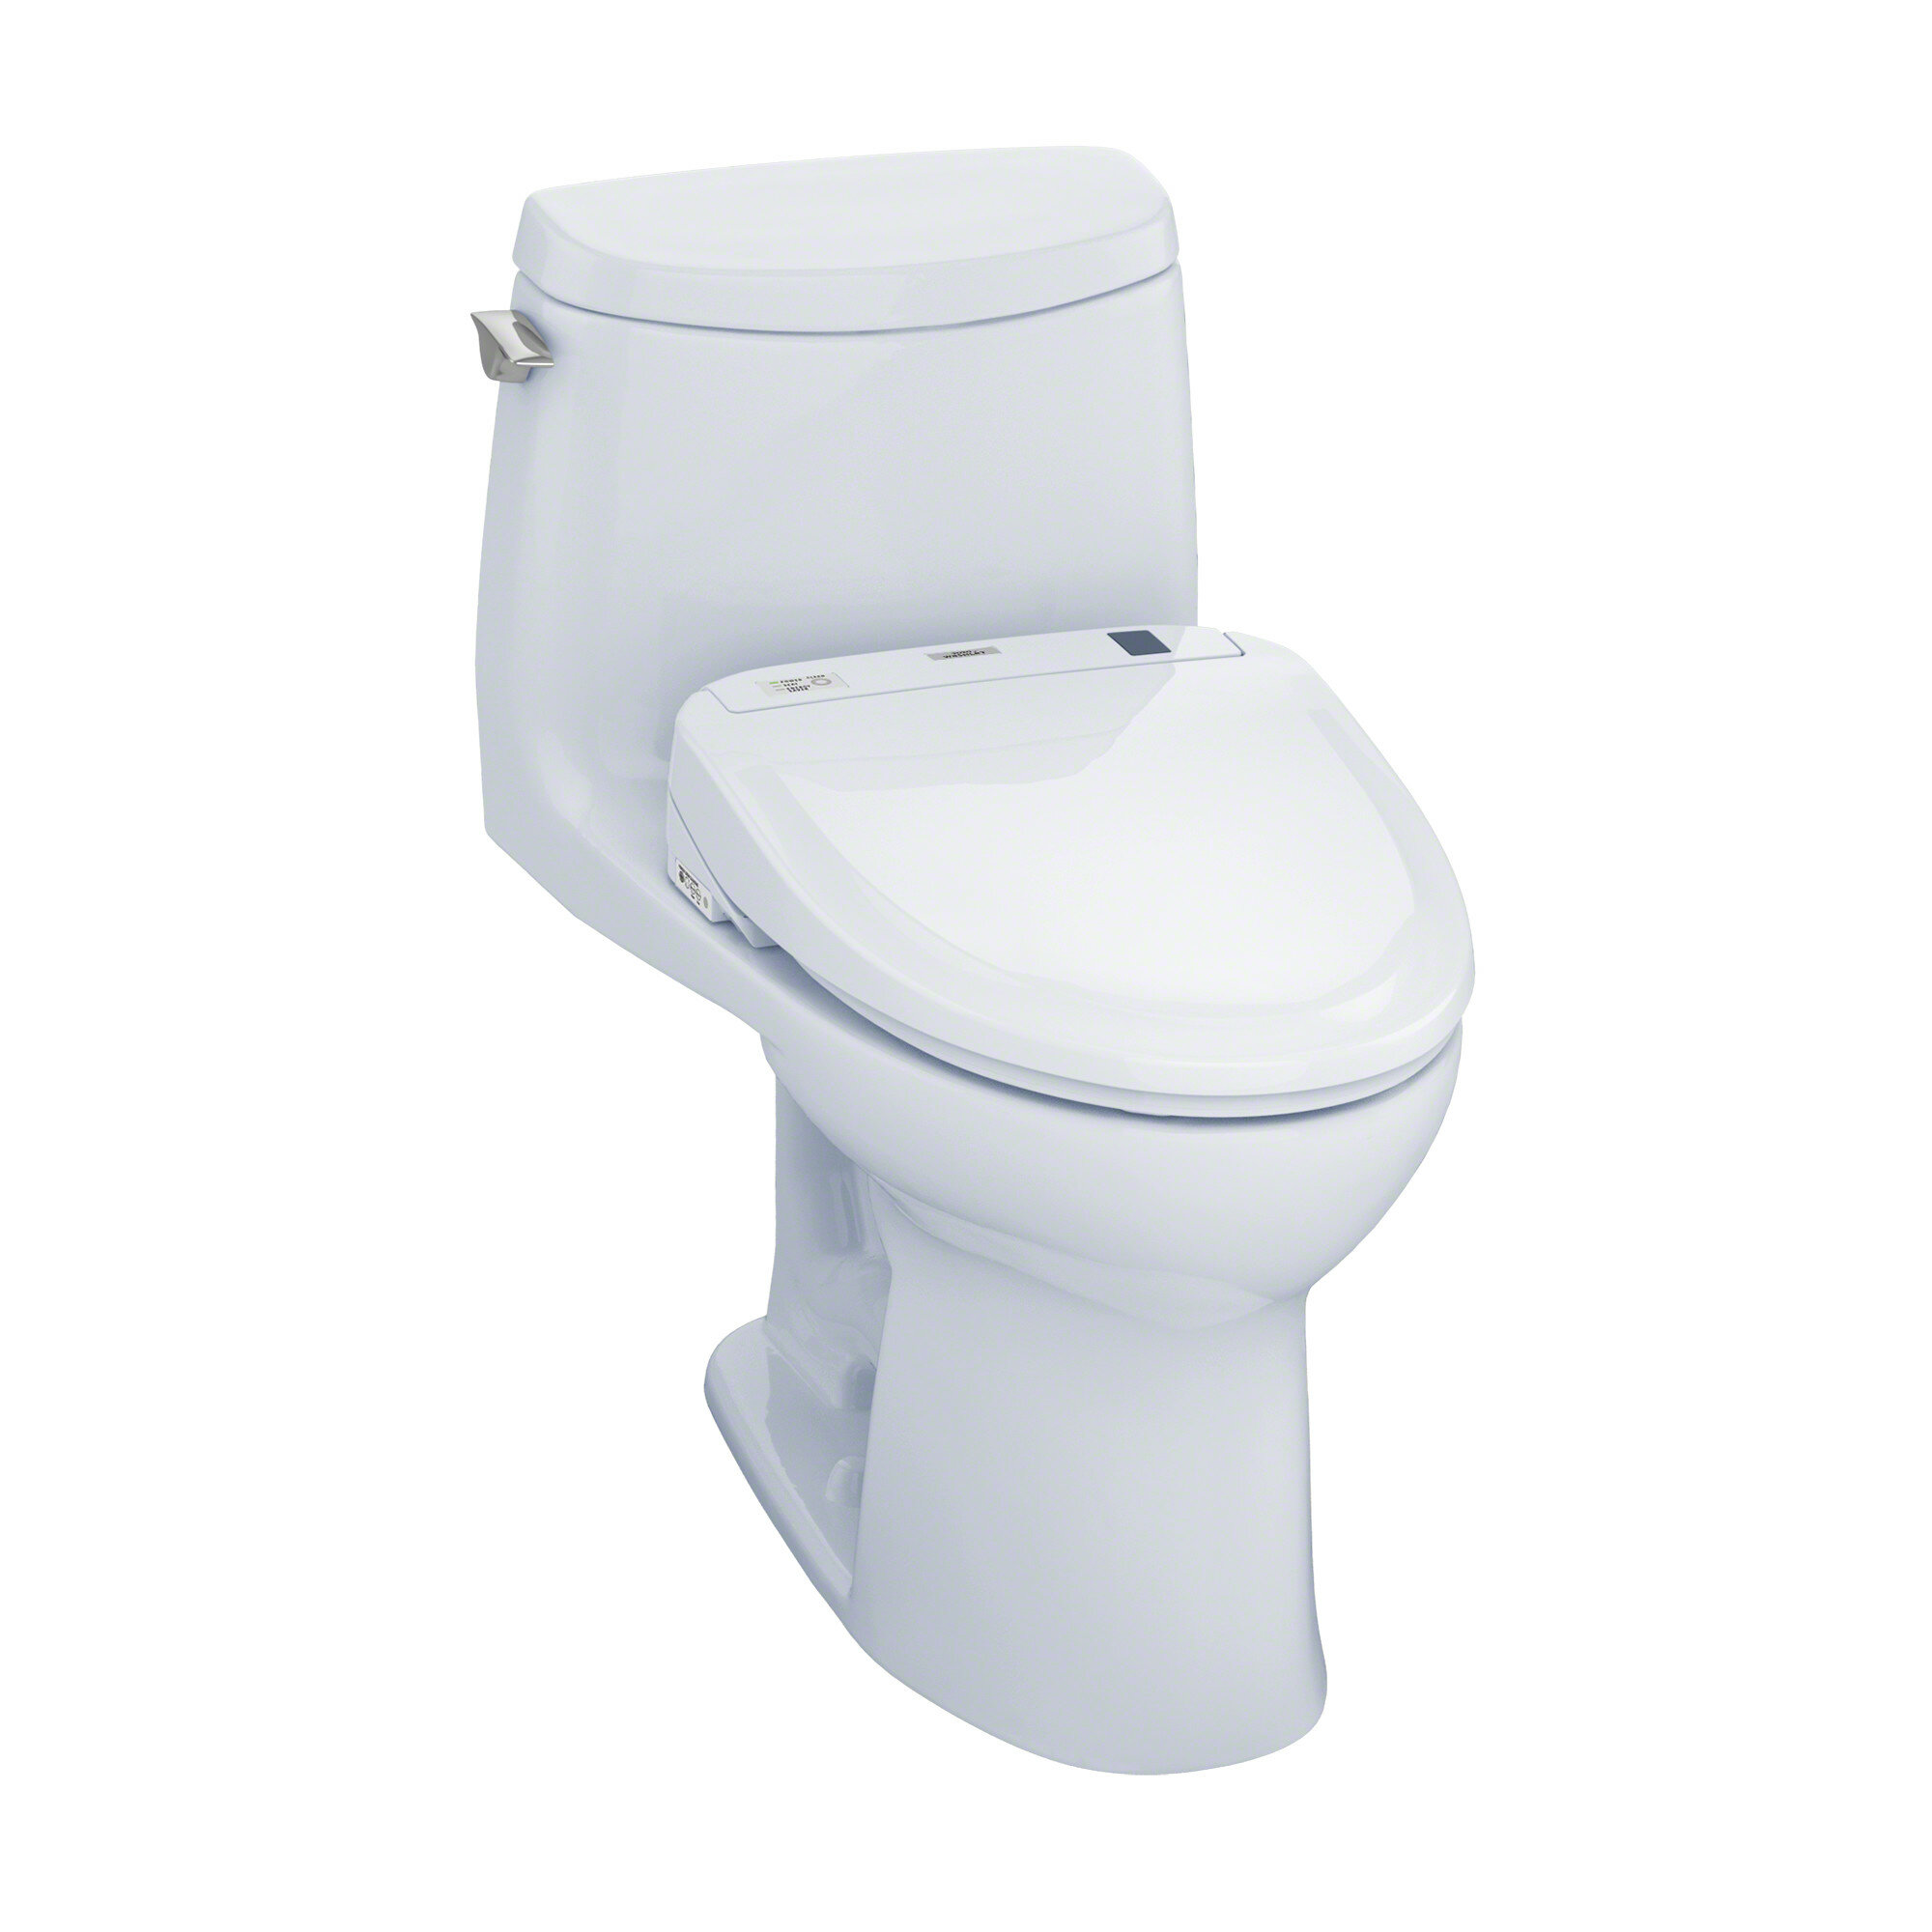 Toto Ultramax Ii 1 0 Gpf Elongated One Piece Toilet With S300e Electronic Bidet Seat Wayfair